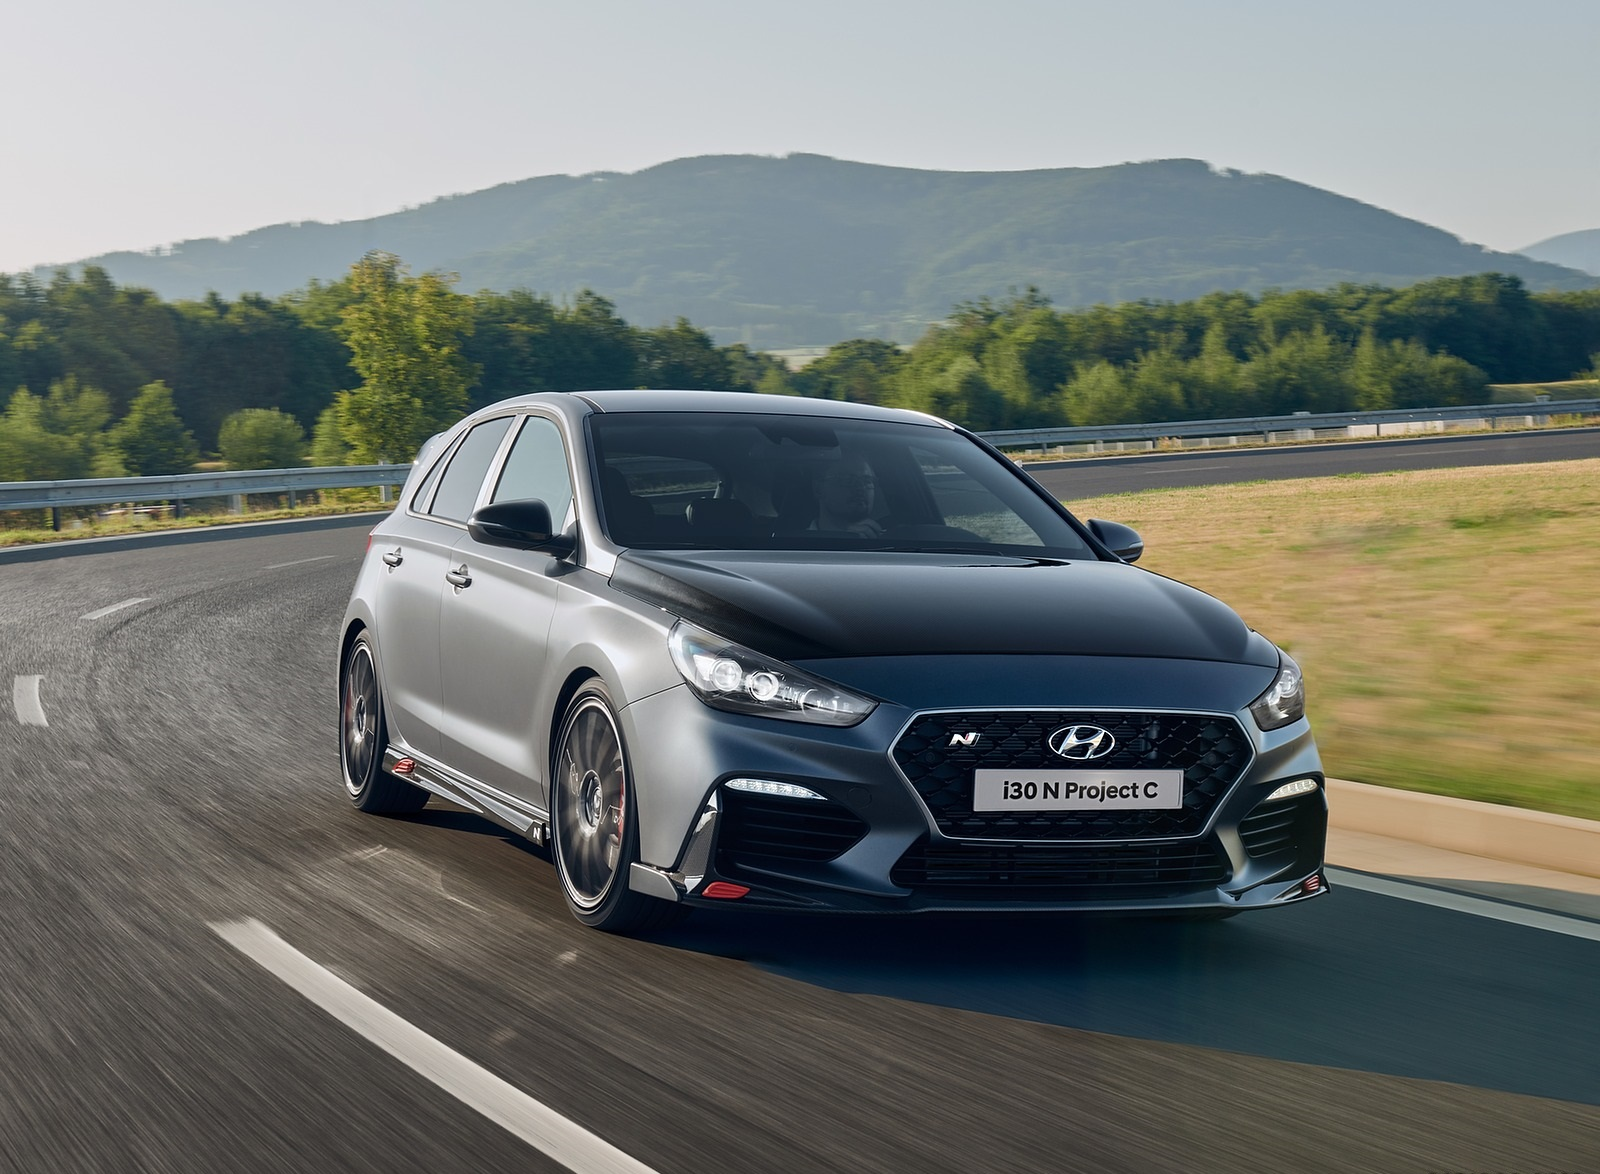 2020 Hyundai i30 N Project C Front Three-Quarter Wallpapers (5)